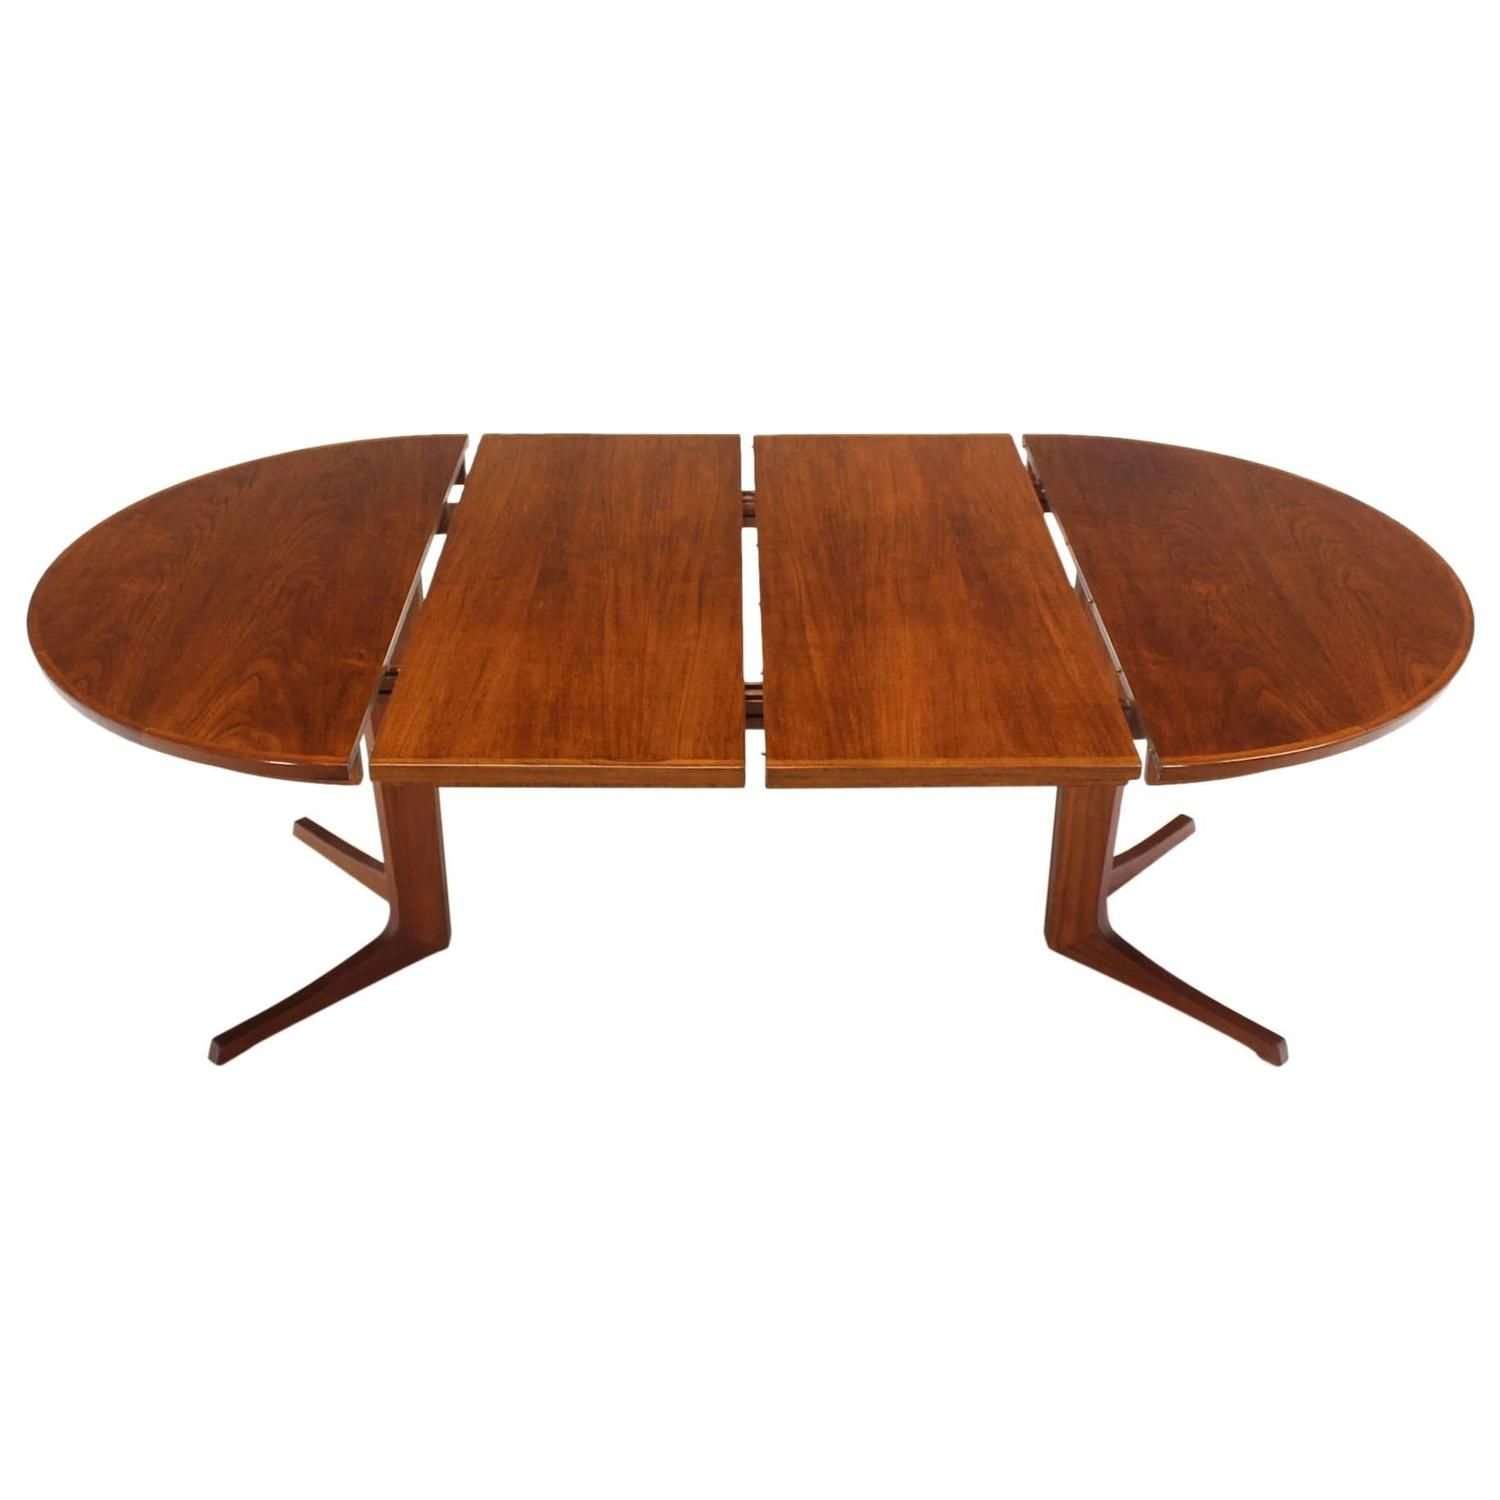 Round Danish Midcentury Modern Teak Dining Table With Two Leaves Awesome Scandinavian Teak Dining Room Furniture Design Inspiration